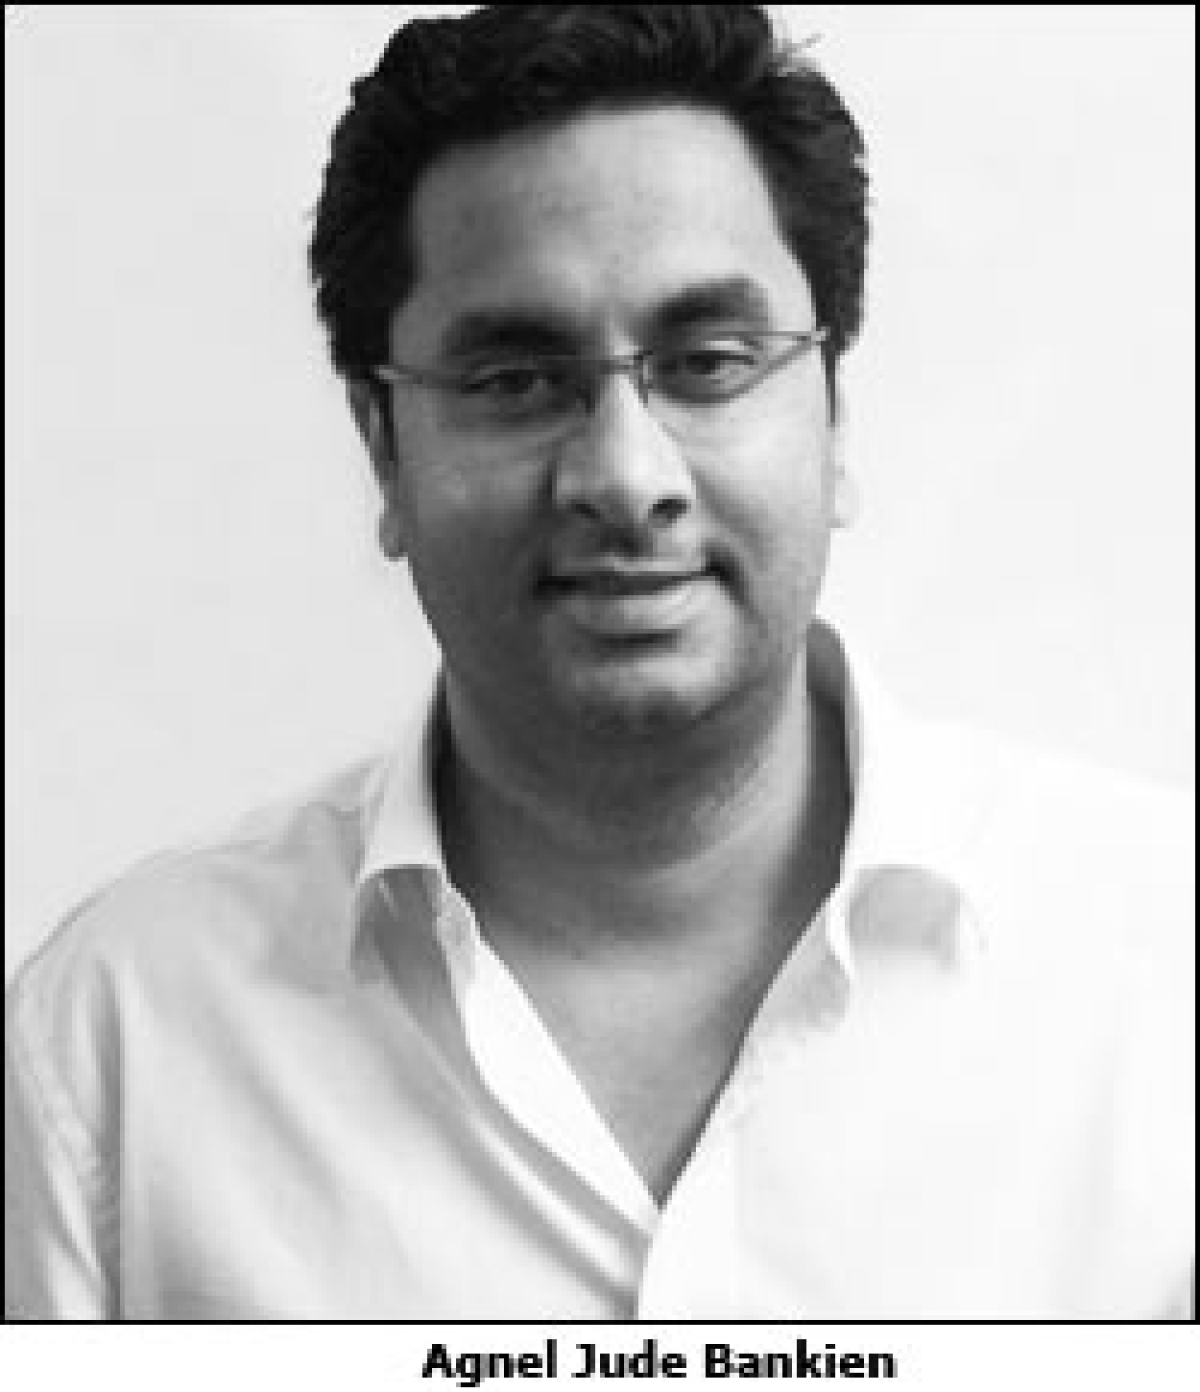 Agnel Jude Bankien joins Sportskeeda as VP, sales and marketing